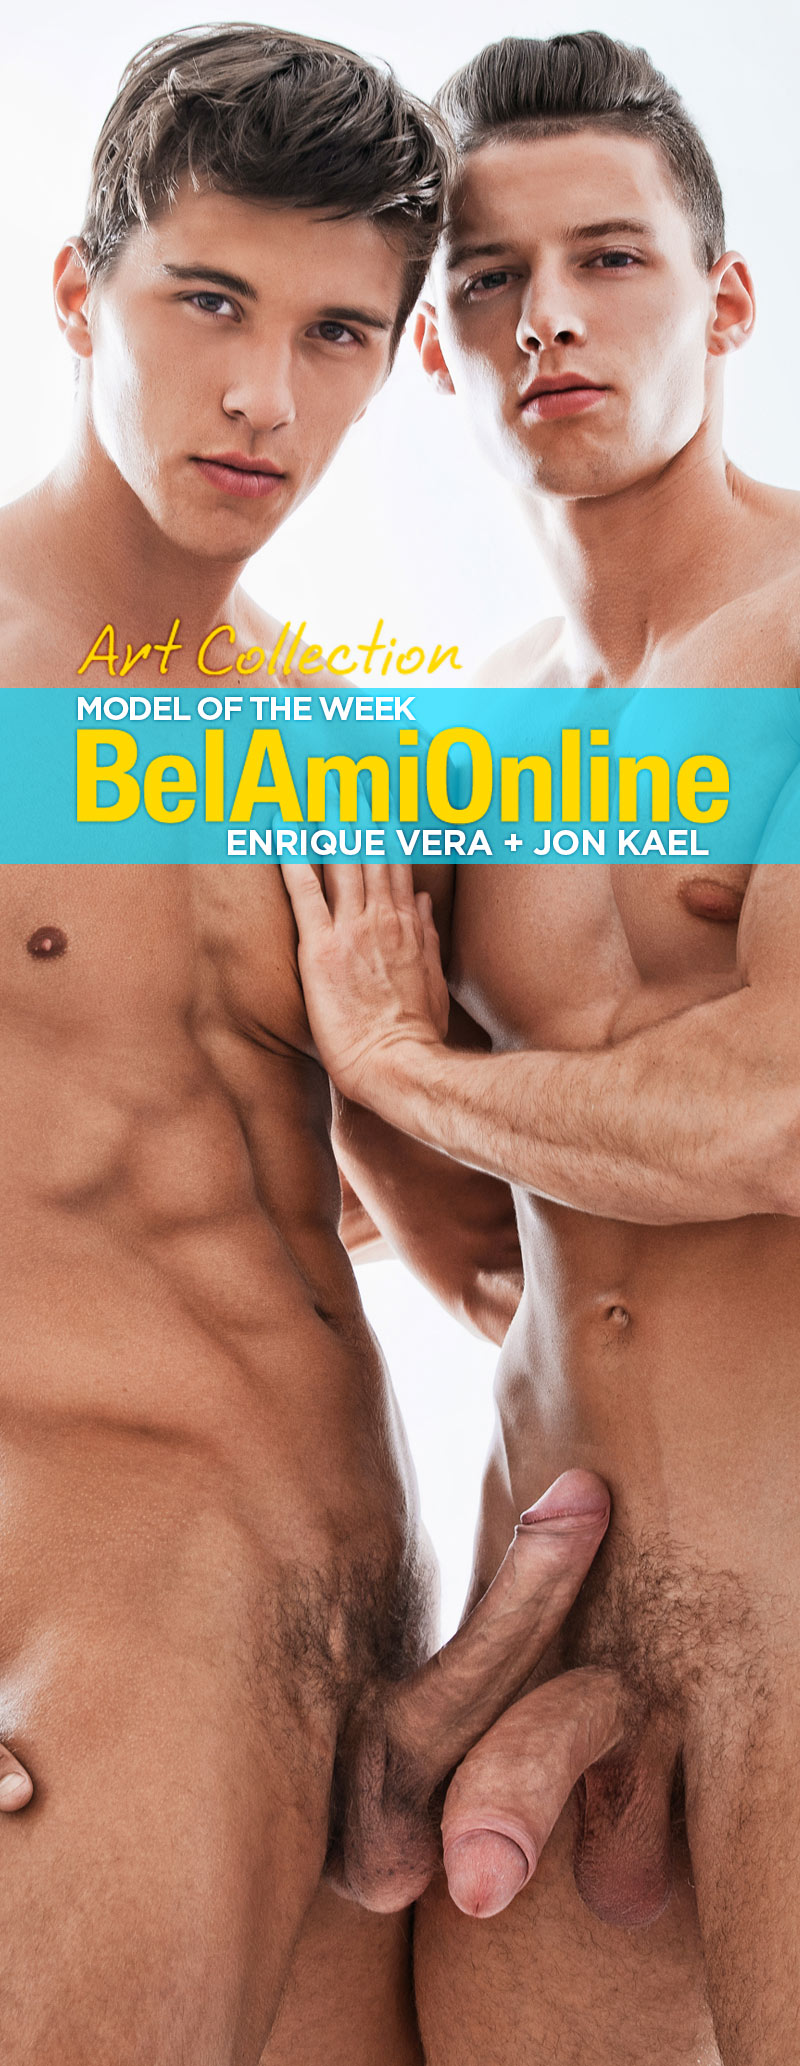 Enrique Vera and Jon Kael (Model Of The Week - Art Collection) at BelAmiOnline.com